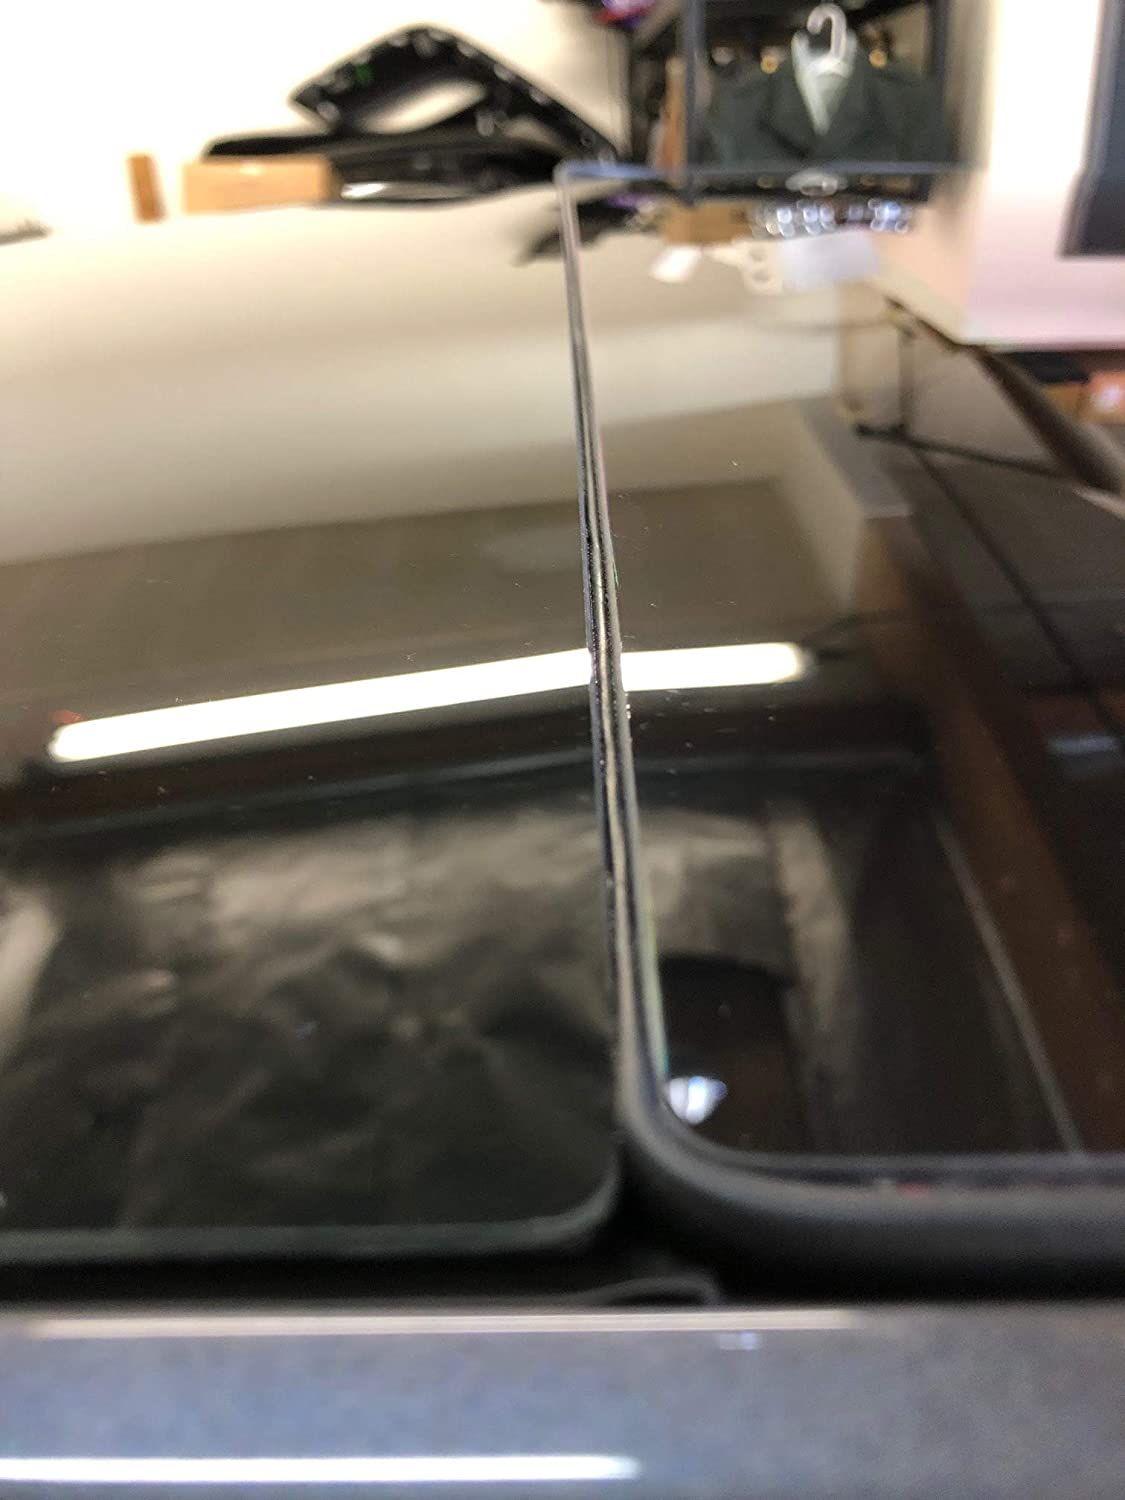 AY Customs Tesla Model 3 Windshield /& Roof Wind Guard Noise Lowering Dampening Reduction Kit Quiet Seal Version 2